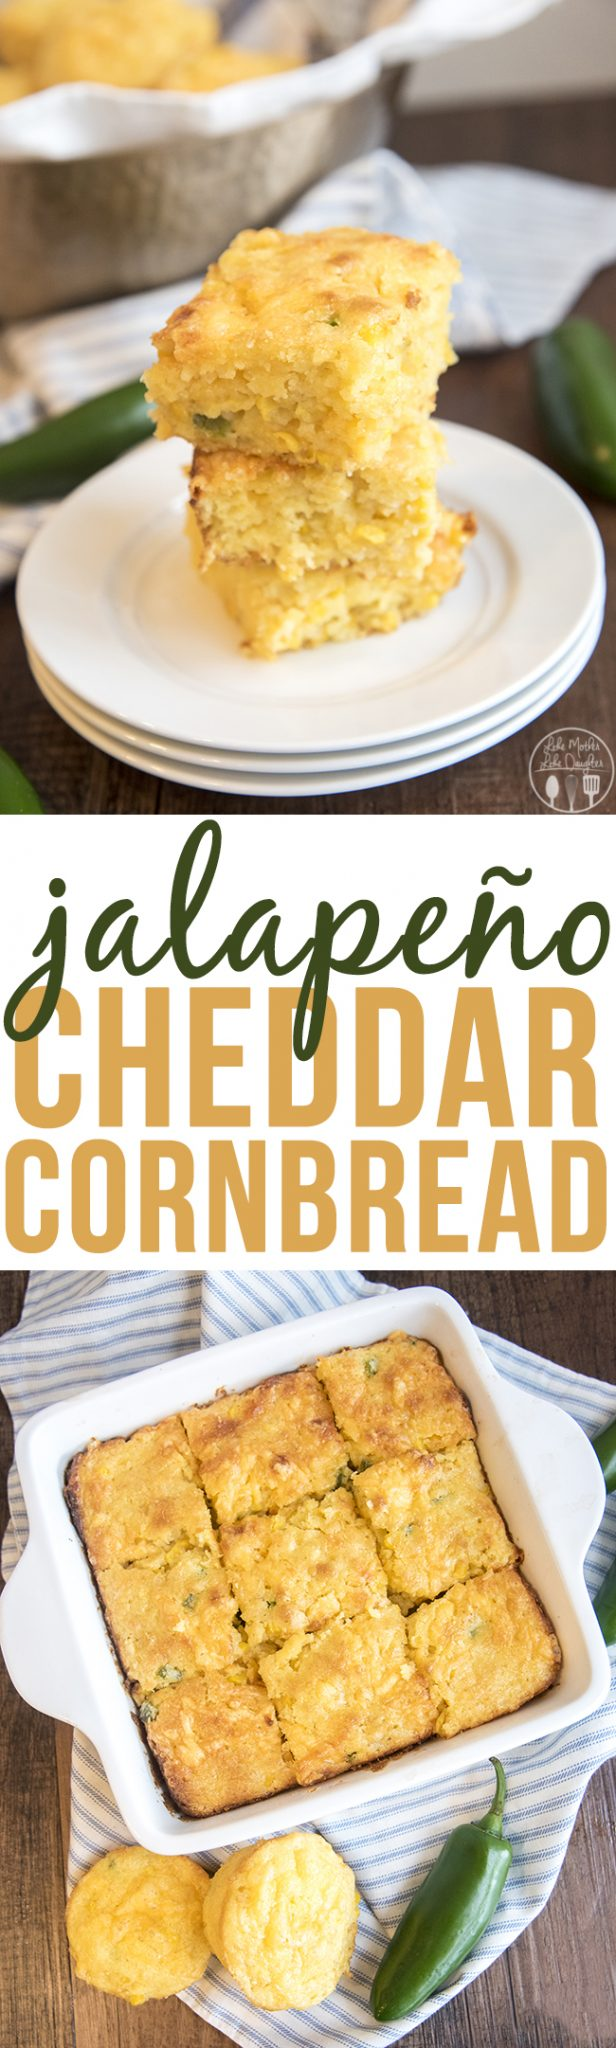 Jalapeno Cheddar Cornbread - This delicious savory cornbread is full of diced jalapenos and cheddar cheese. Perfect for a quick and easy side dish!